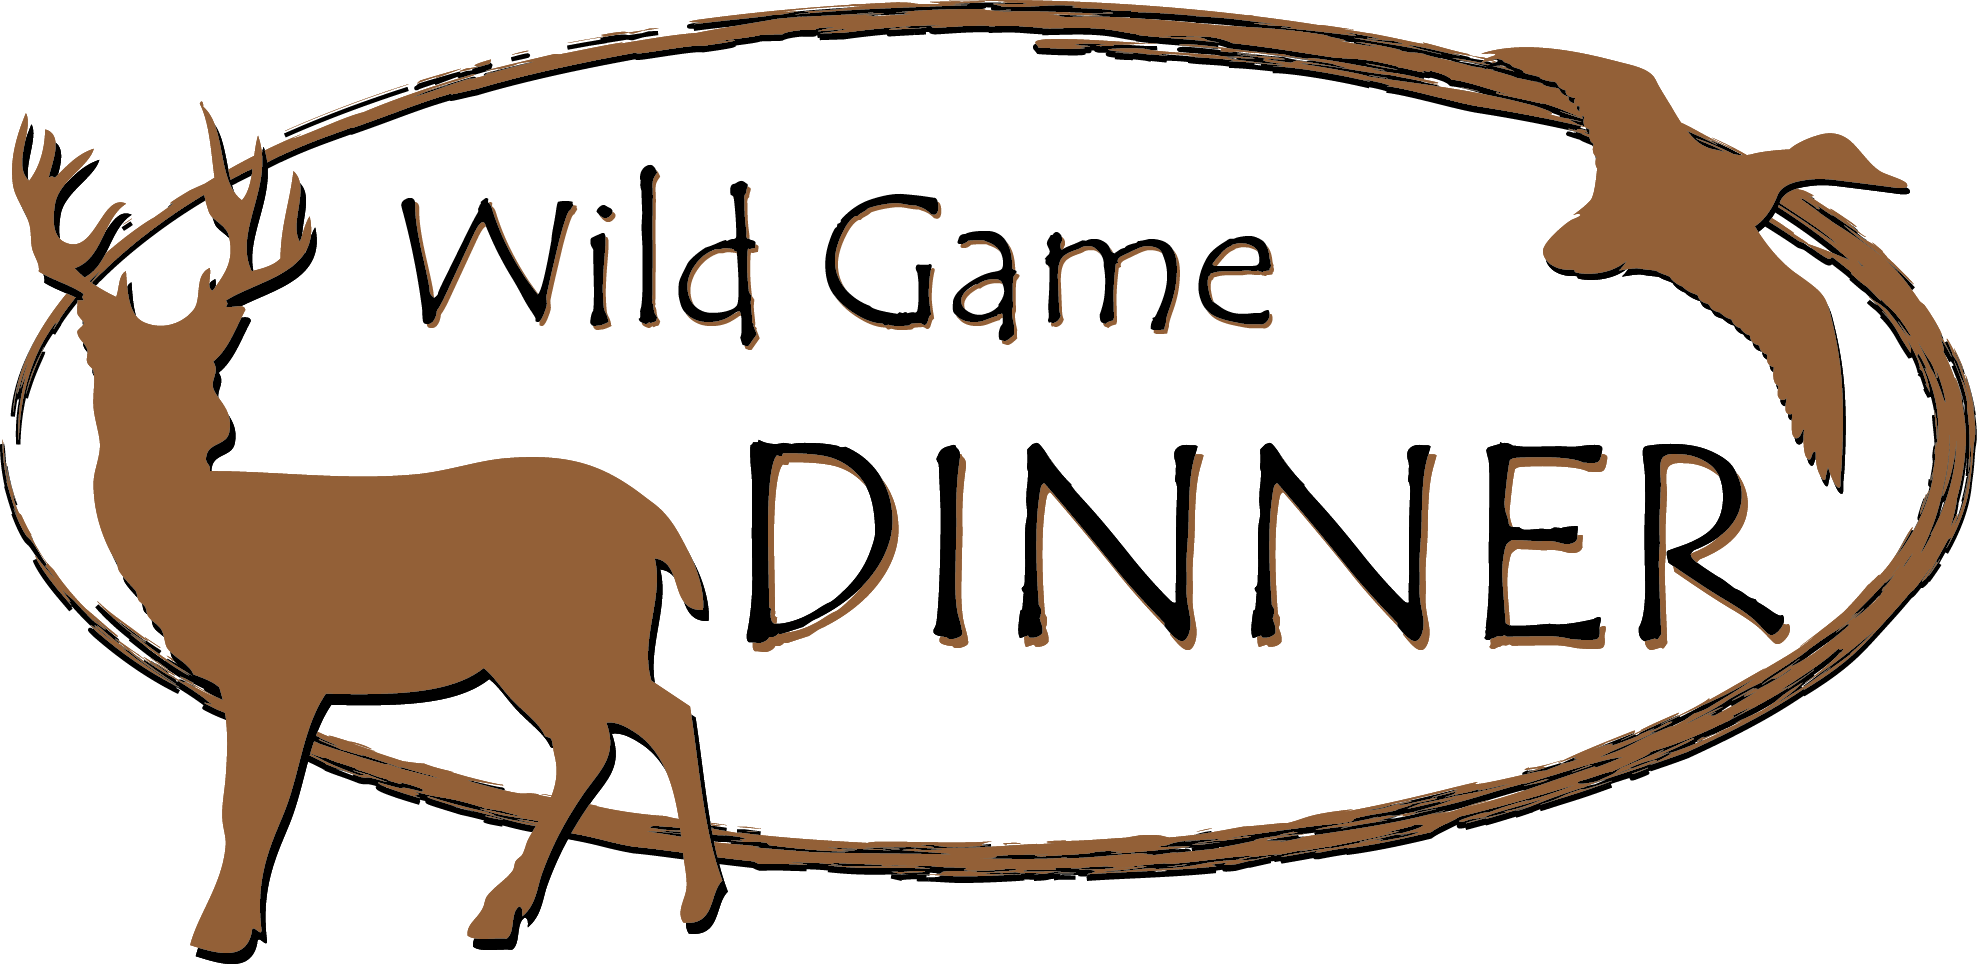 Fish supper clipart. Wild game potluck dinner